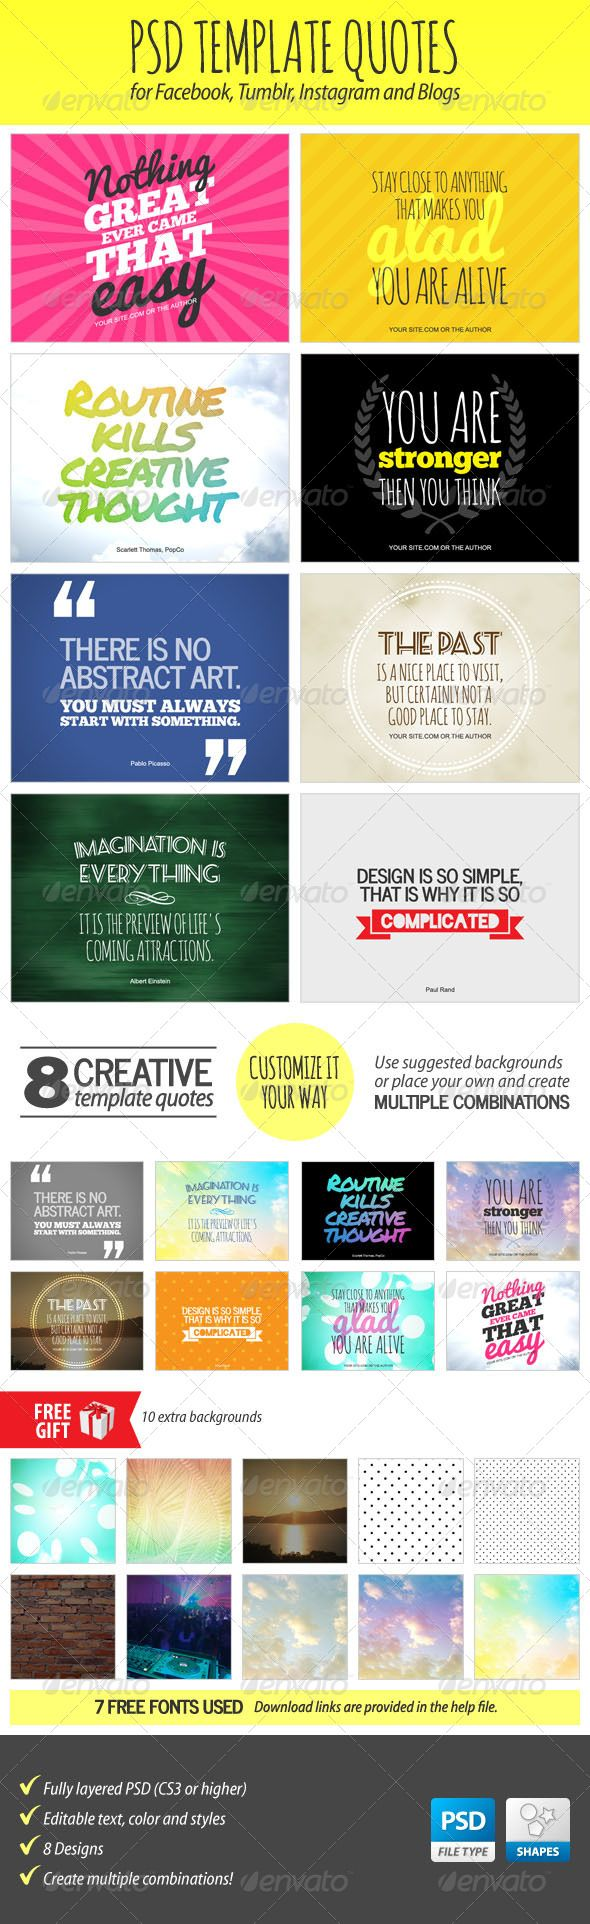 Psd template quotes instagram adobe and facebook for Social media templates psd